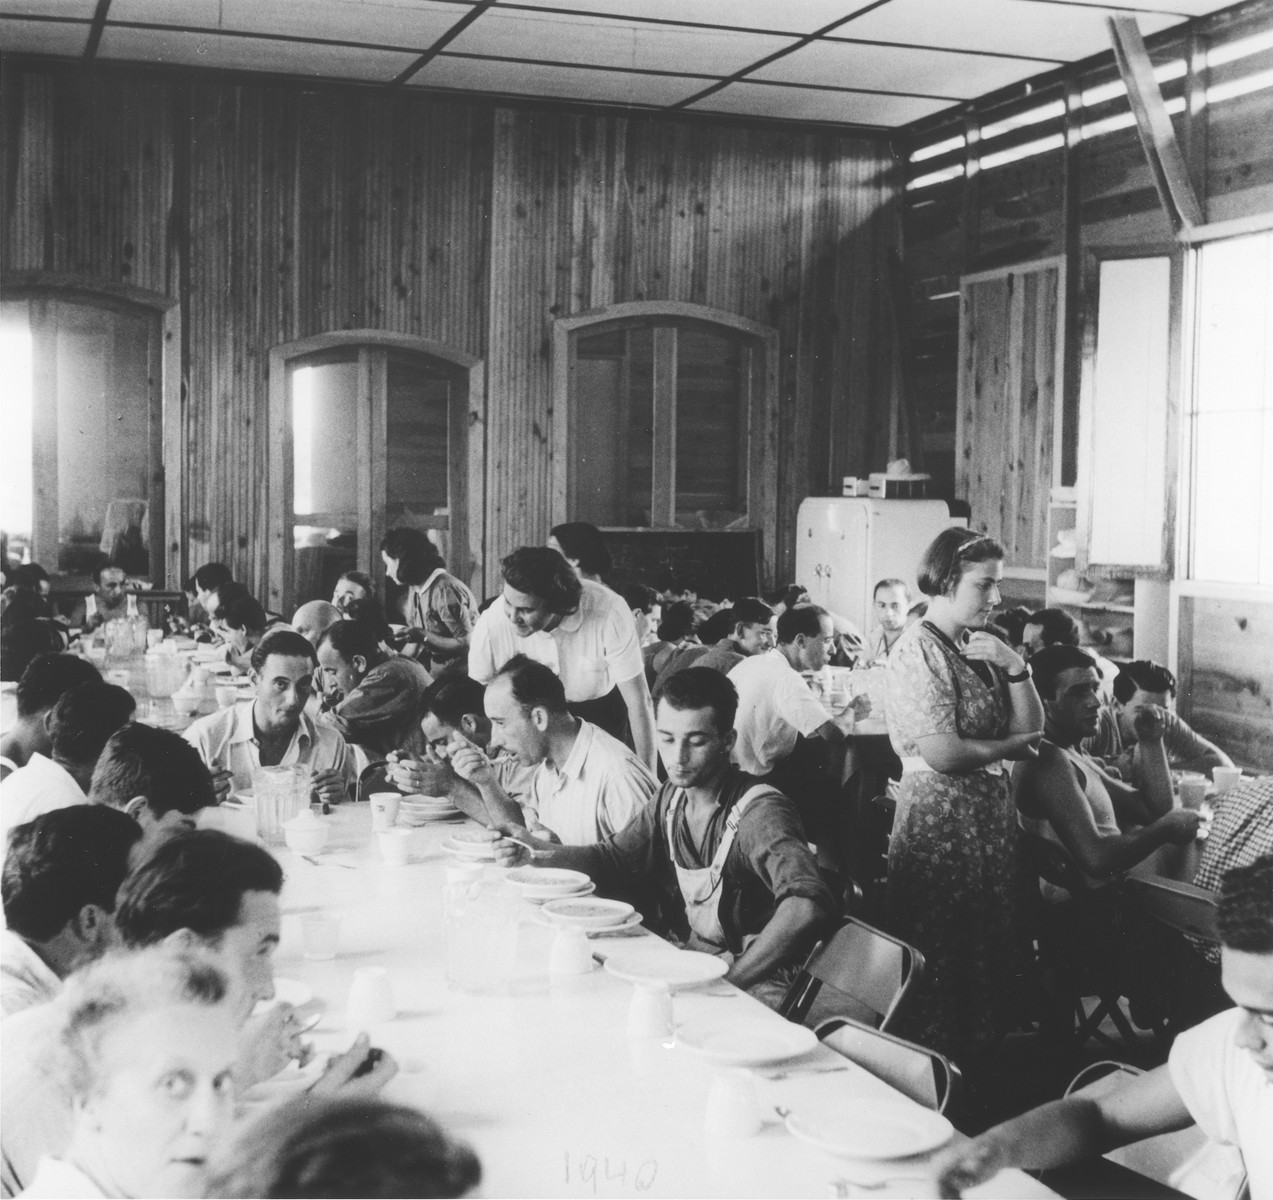 Jewish refugees eat in the communal dining hall at the agricultural settlement in Sosua.